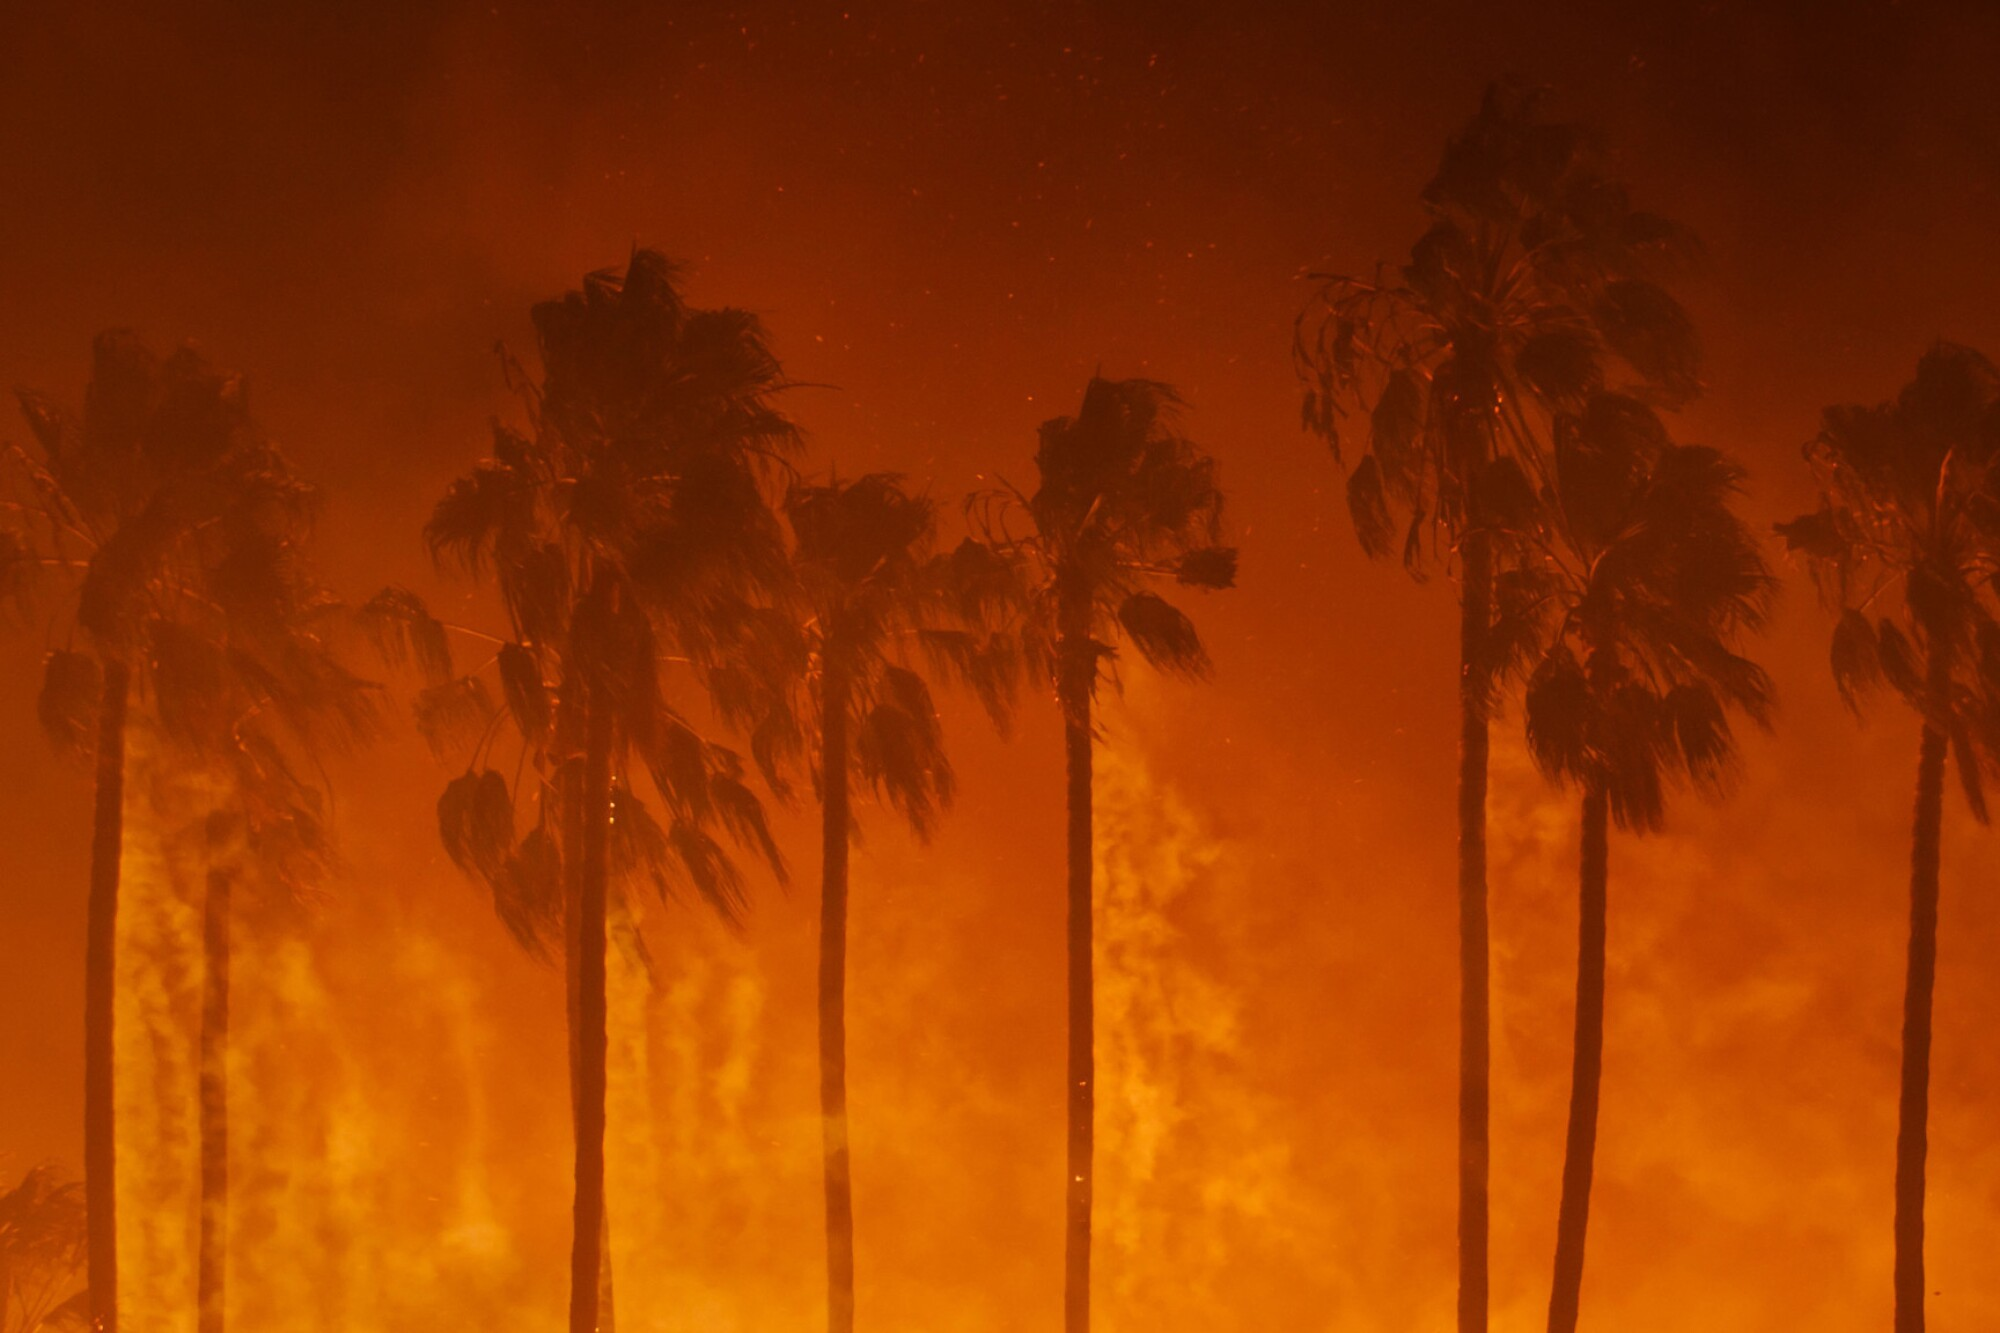 Smoke blows out of the burning palm trees as a 2017 brush fire threaten homes in Ventura, Calif.